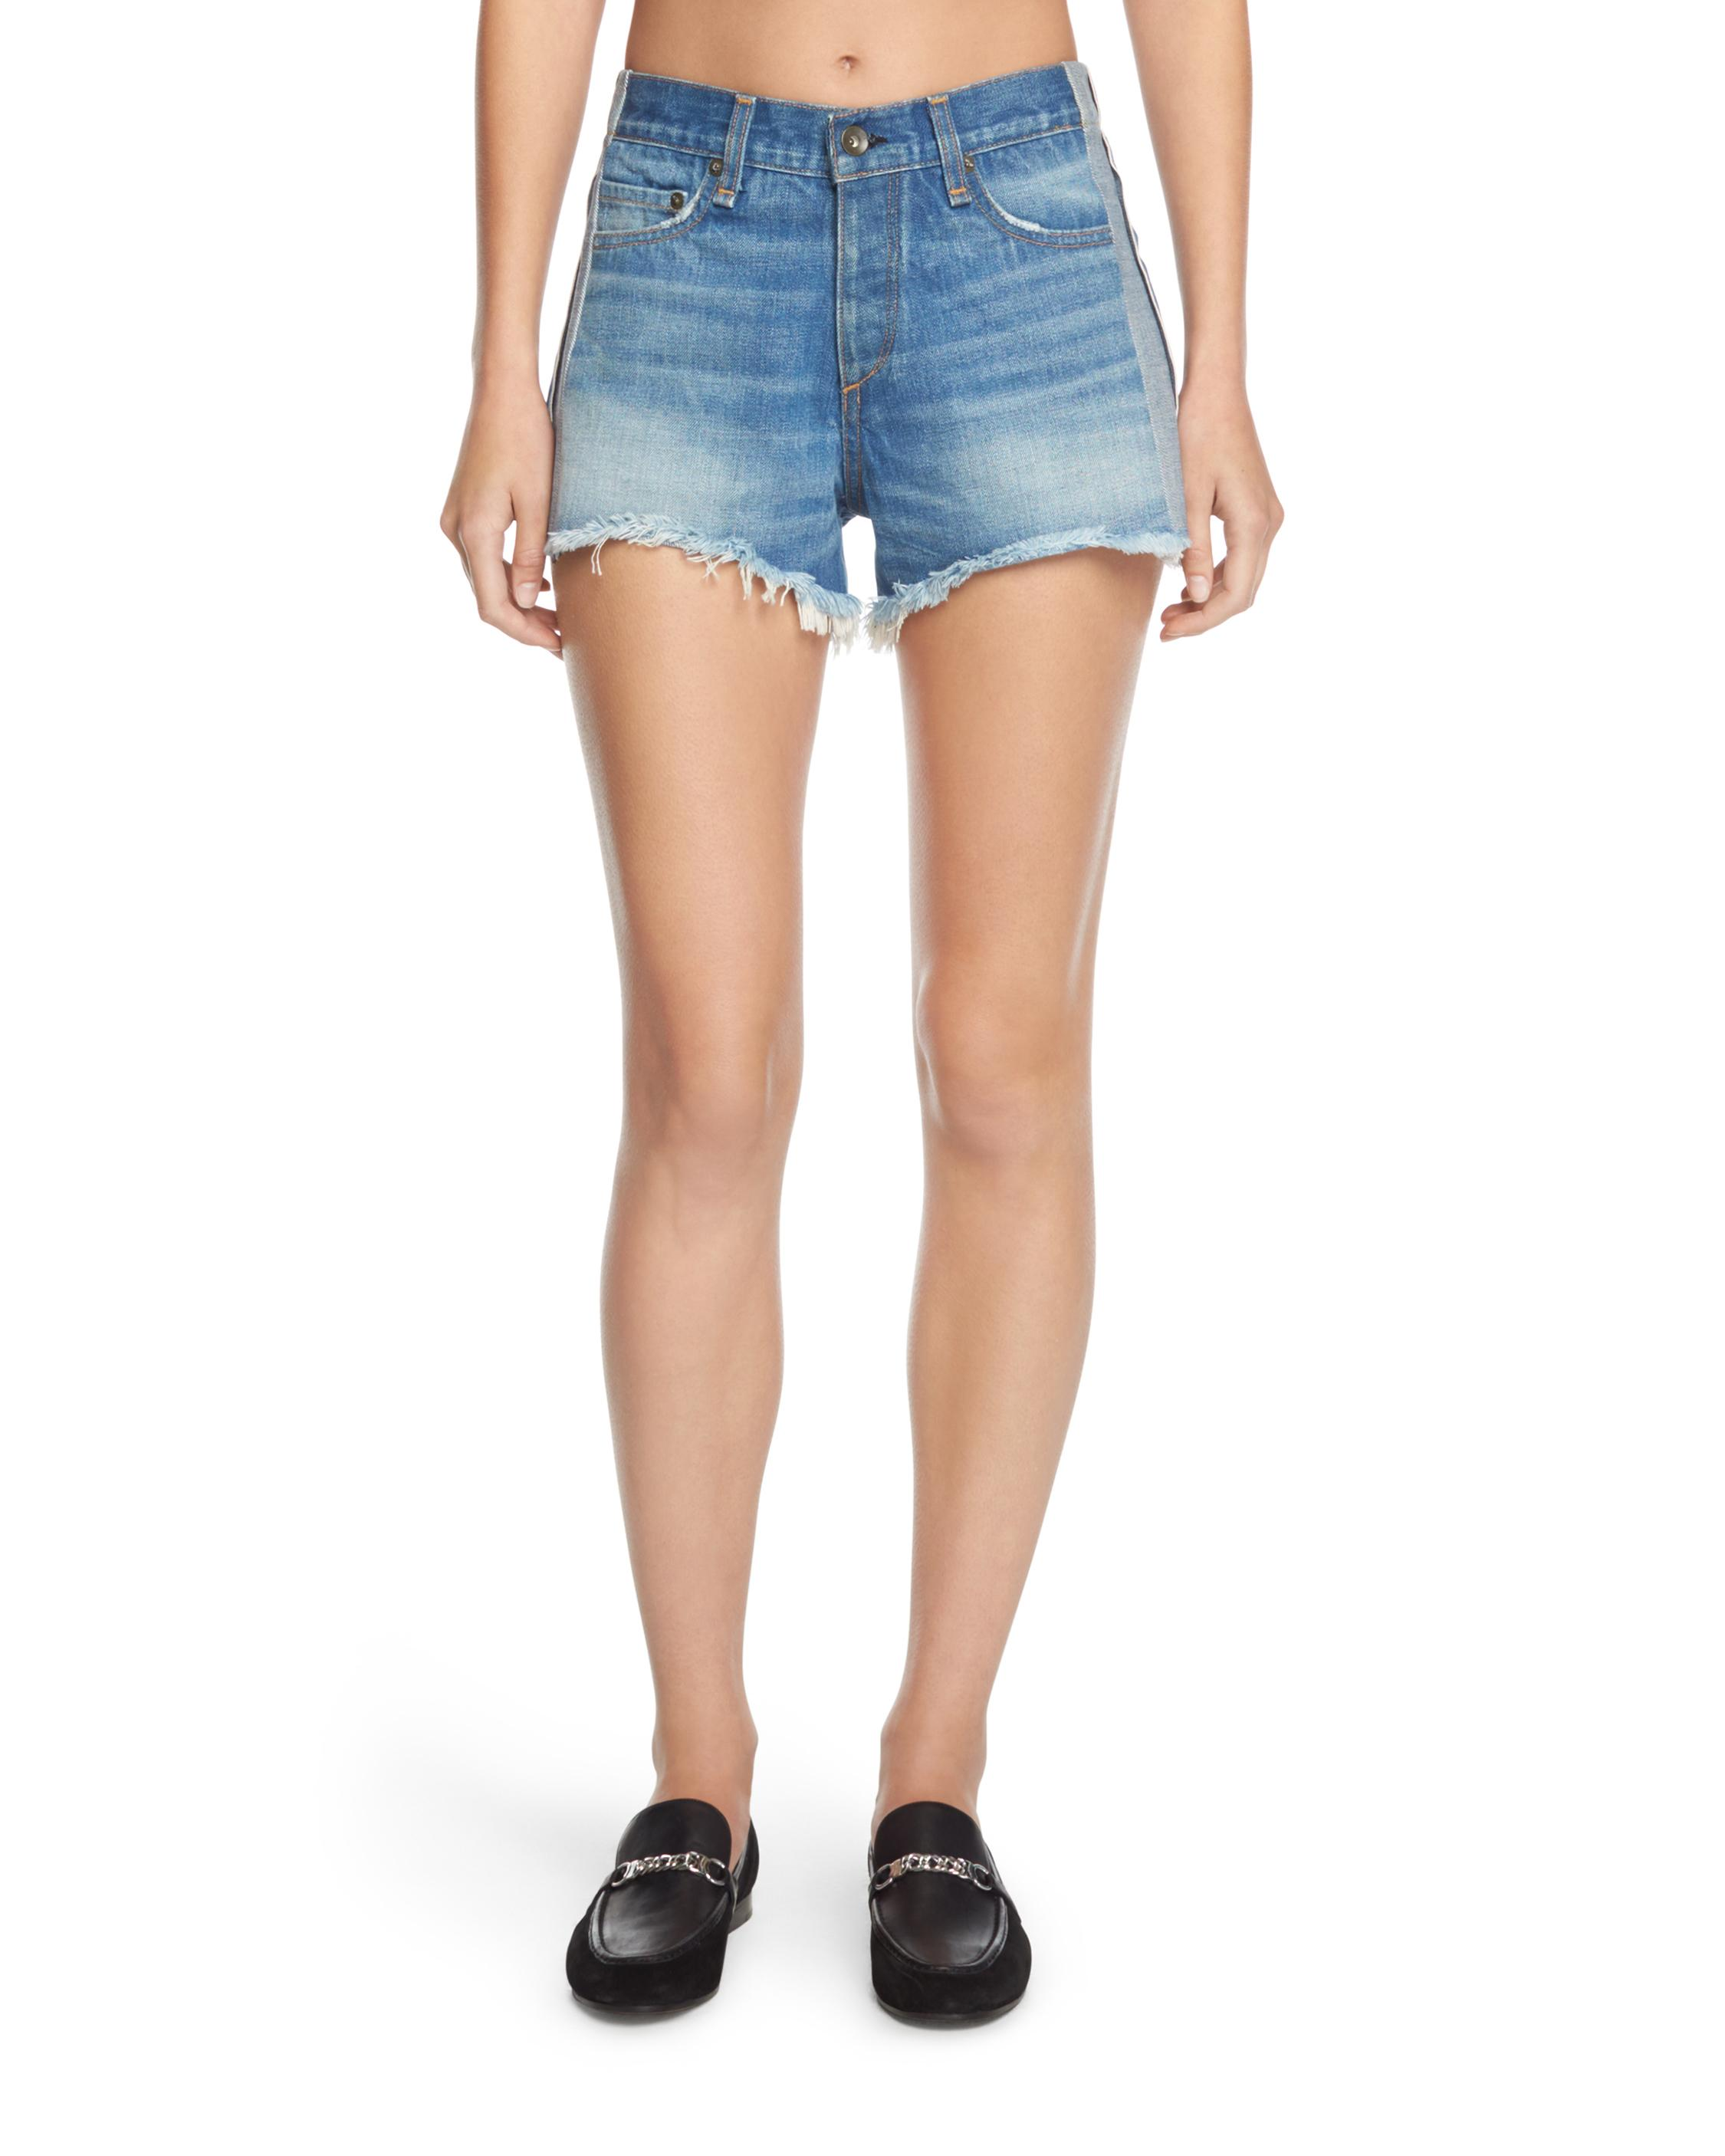 Looking For Sale Online Sale Discounts Rag & Bone Mid-Rise Distressed Shorts Websites Sale Online Buy For Sale IDntR03